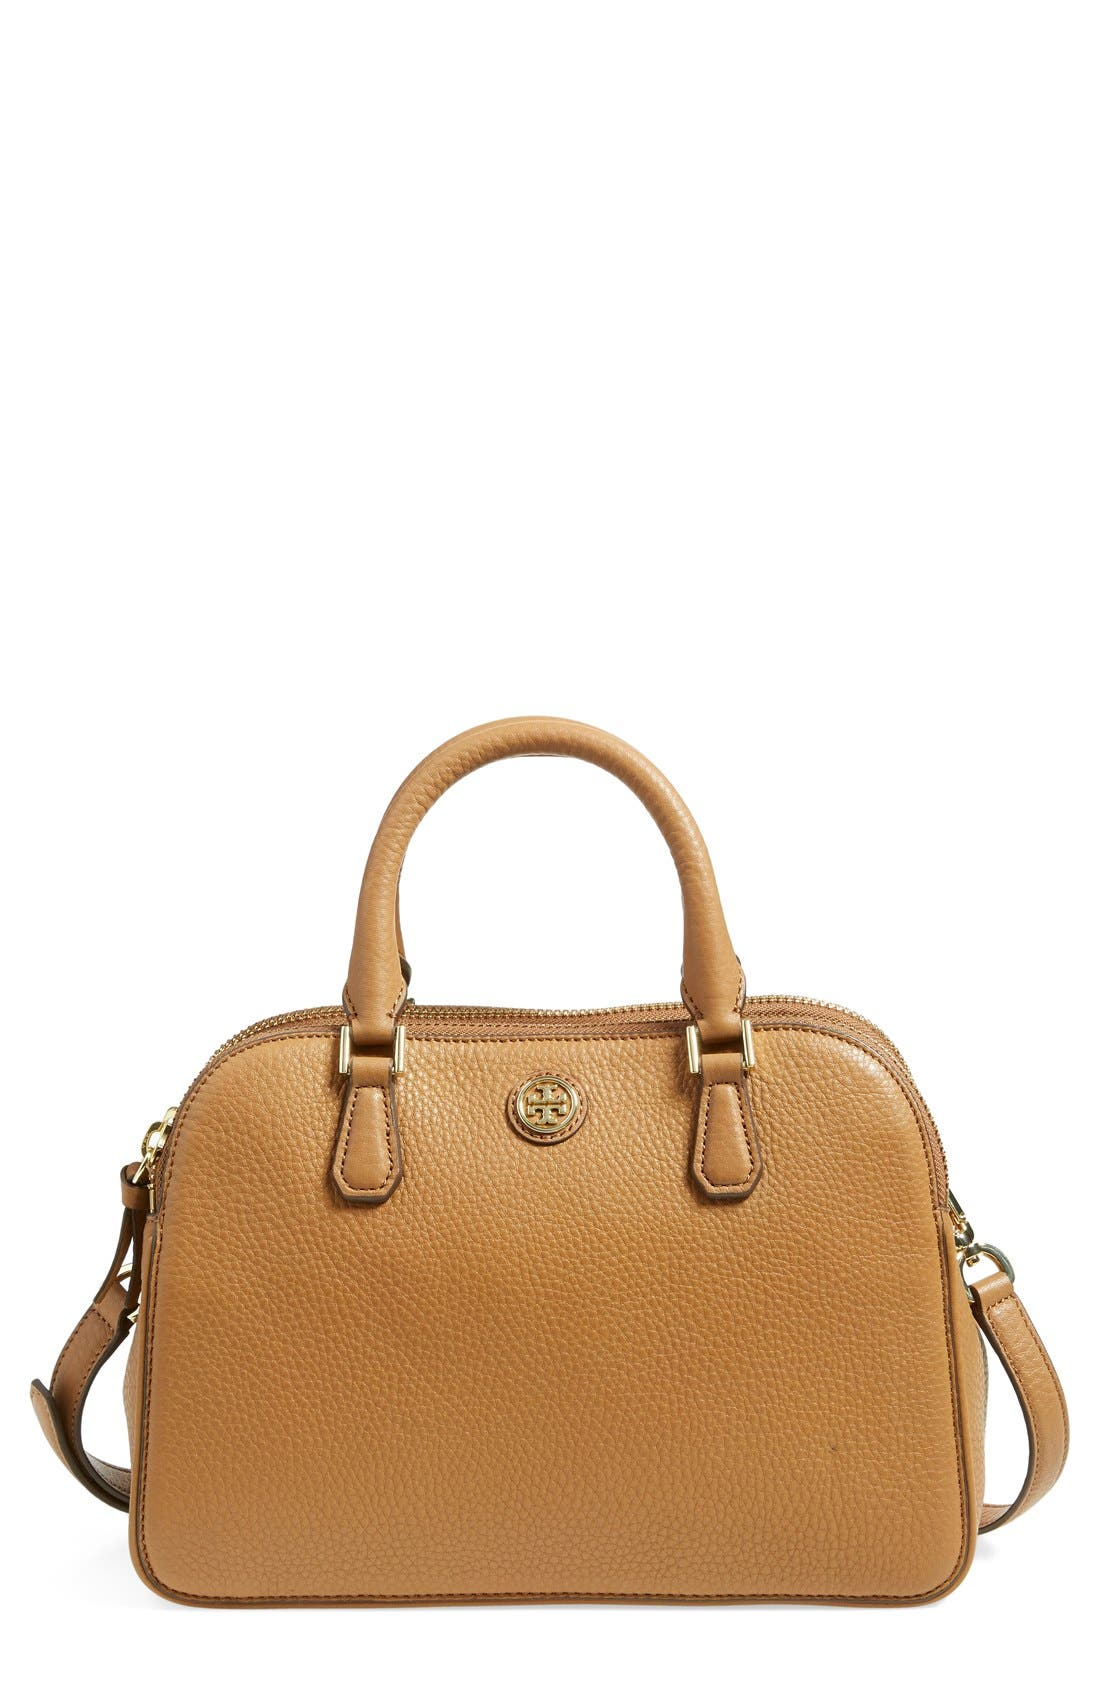 Alternate Image 1 Selected - Tory Burch 'Small Robinson' Pebbled Leather Satchel